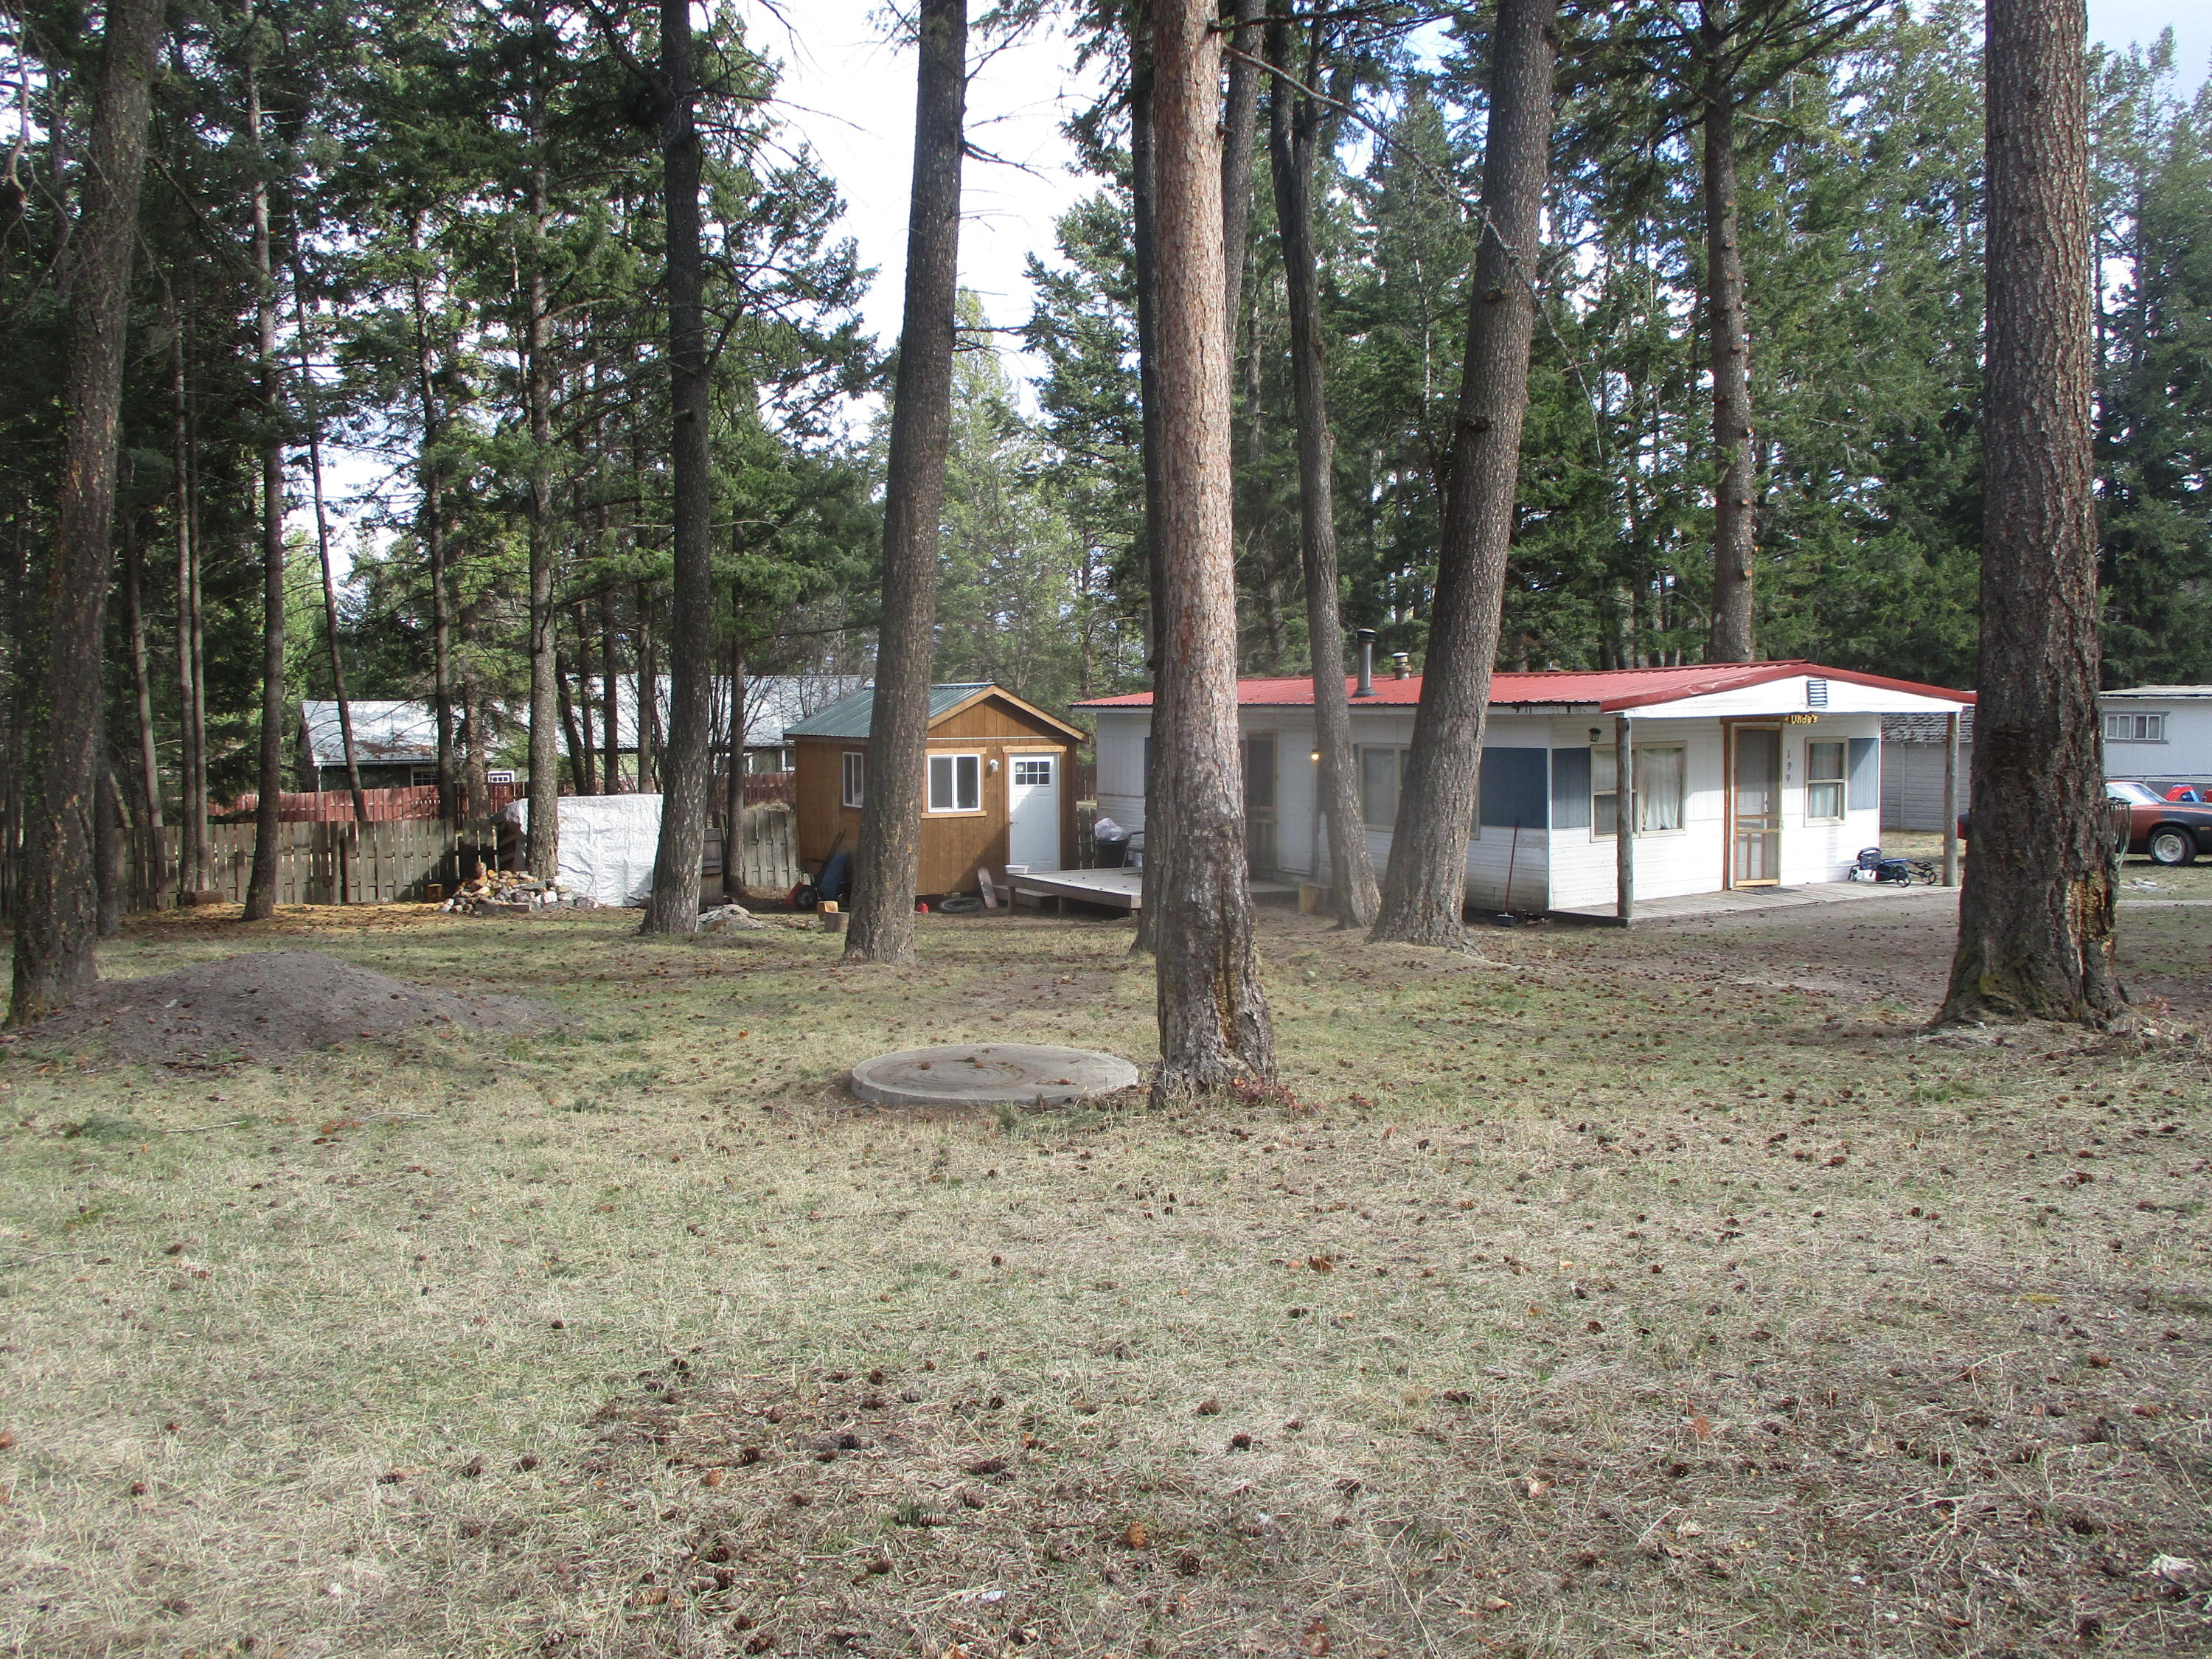 Wonderful Lakeside location just a short stroll to beautiful Flathead Lake, Volunteer Park,  and the quaint little town of Lakeside, and just minutes to Blacktail Mountain Recreation Area.  This is a beautiful end-of-the-road lot with mature trees; the cozy two bedroom/one bathroom has made a great rental and would make a great vacation home or otherwise!  Call Judy Fountain at 406-253-6741 or your real estate professional for more information.